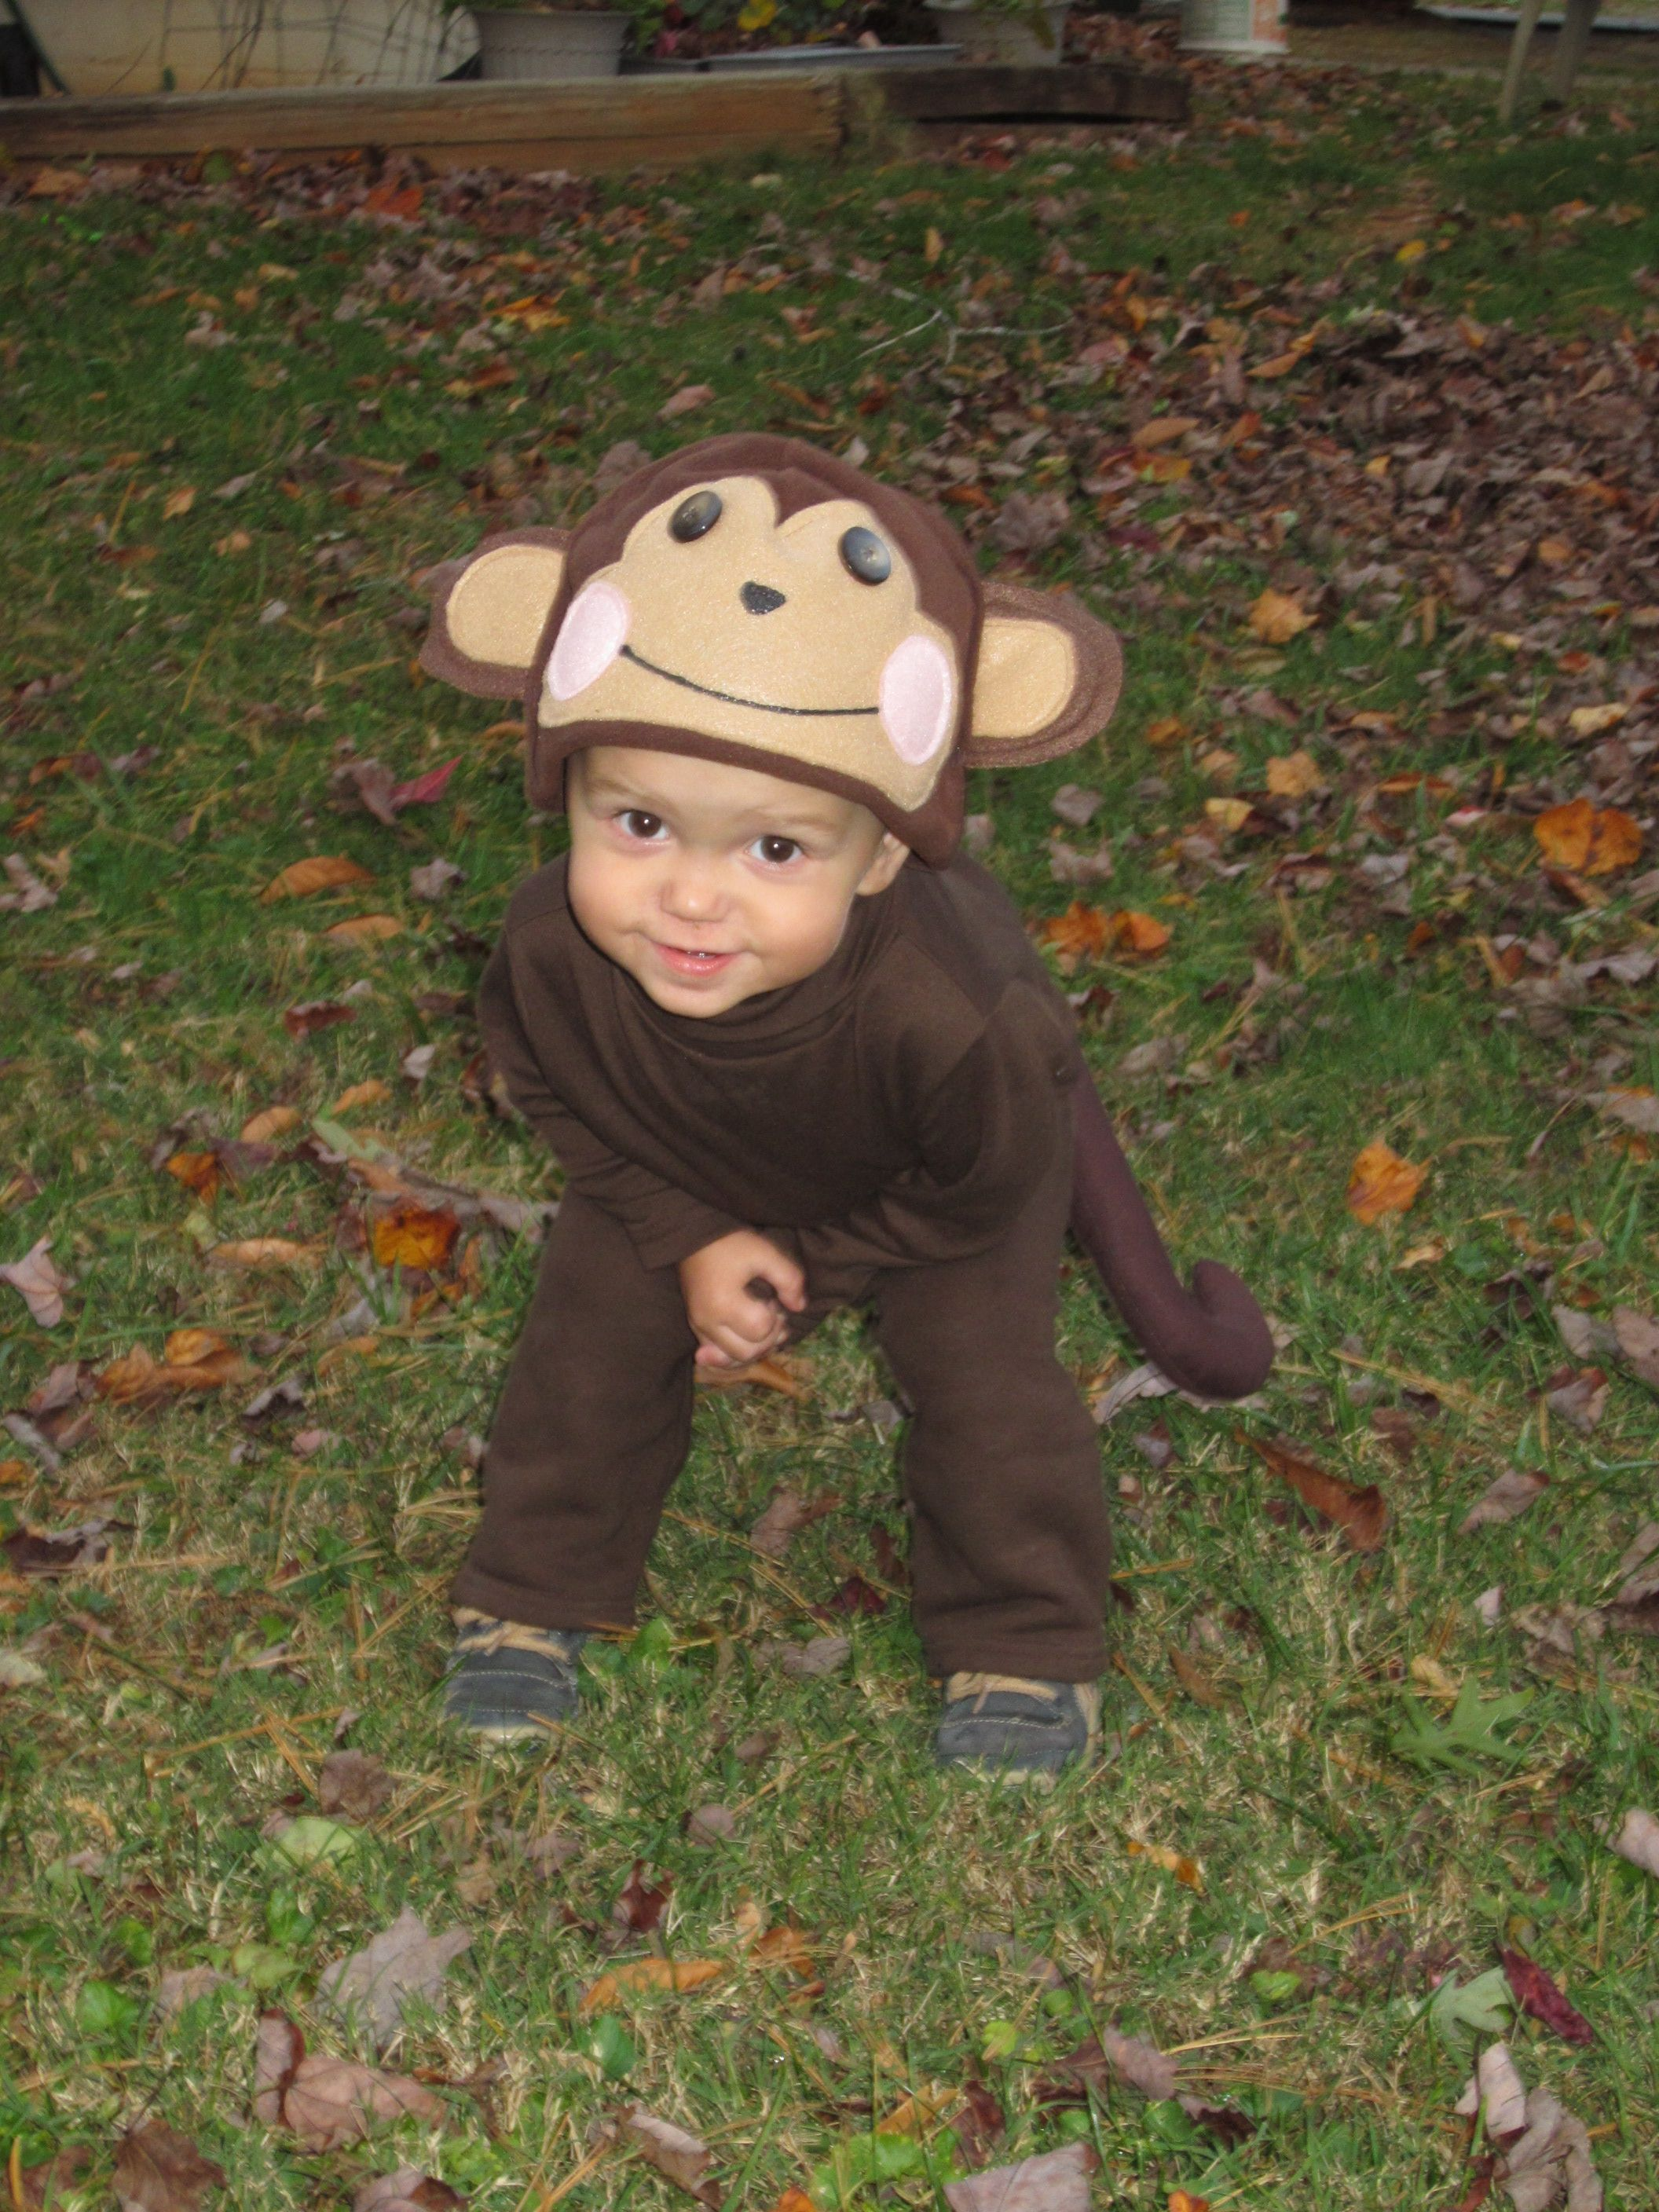 DIY monkey costume with sweatpants, turtleneck, and homemade hat ...